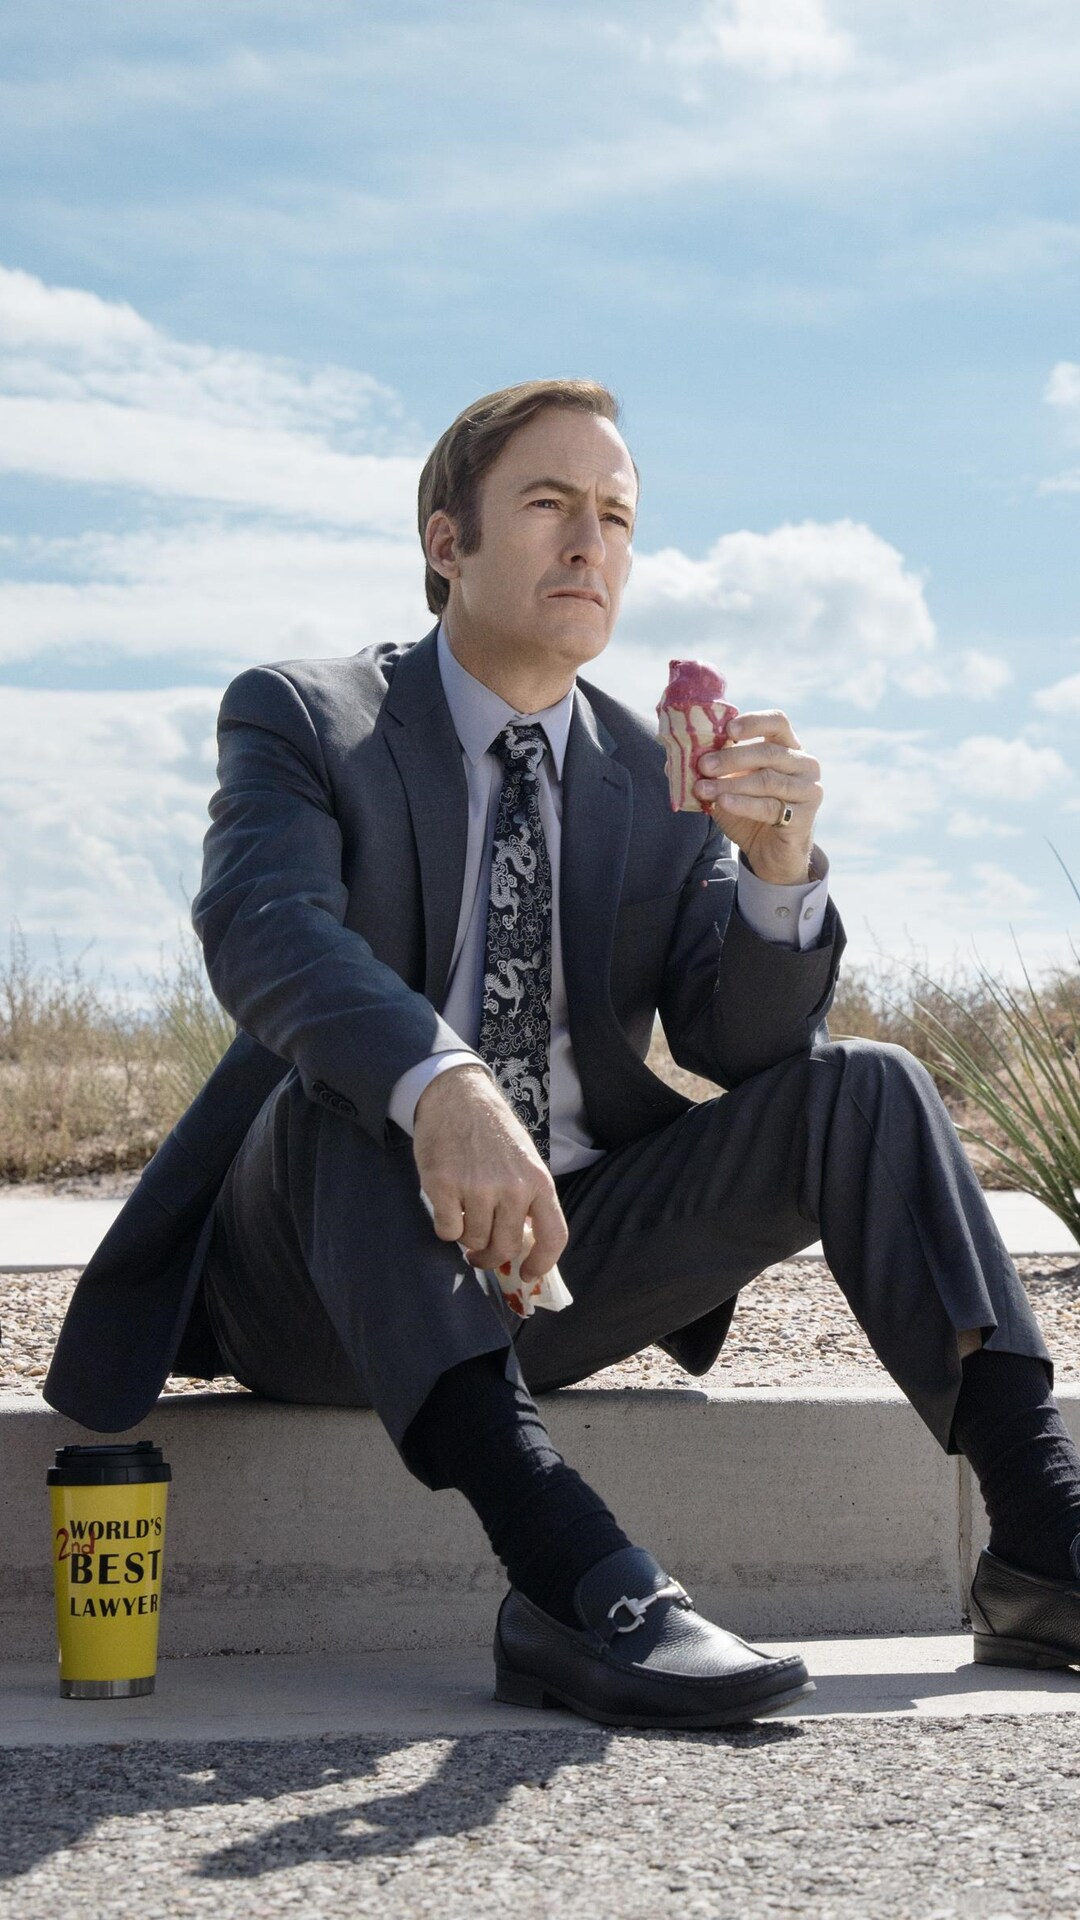 1080x1920 Better Call Saul Se 2 Iphone 7 6s 6 Plus Pixel Xl One